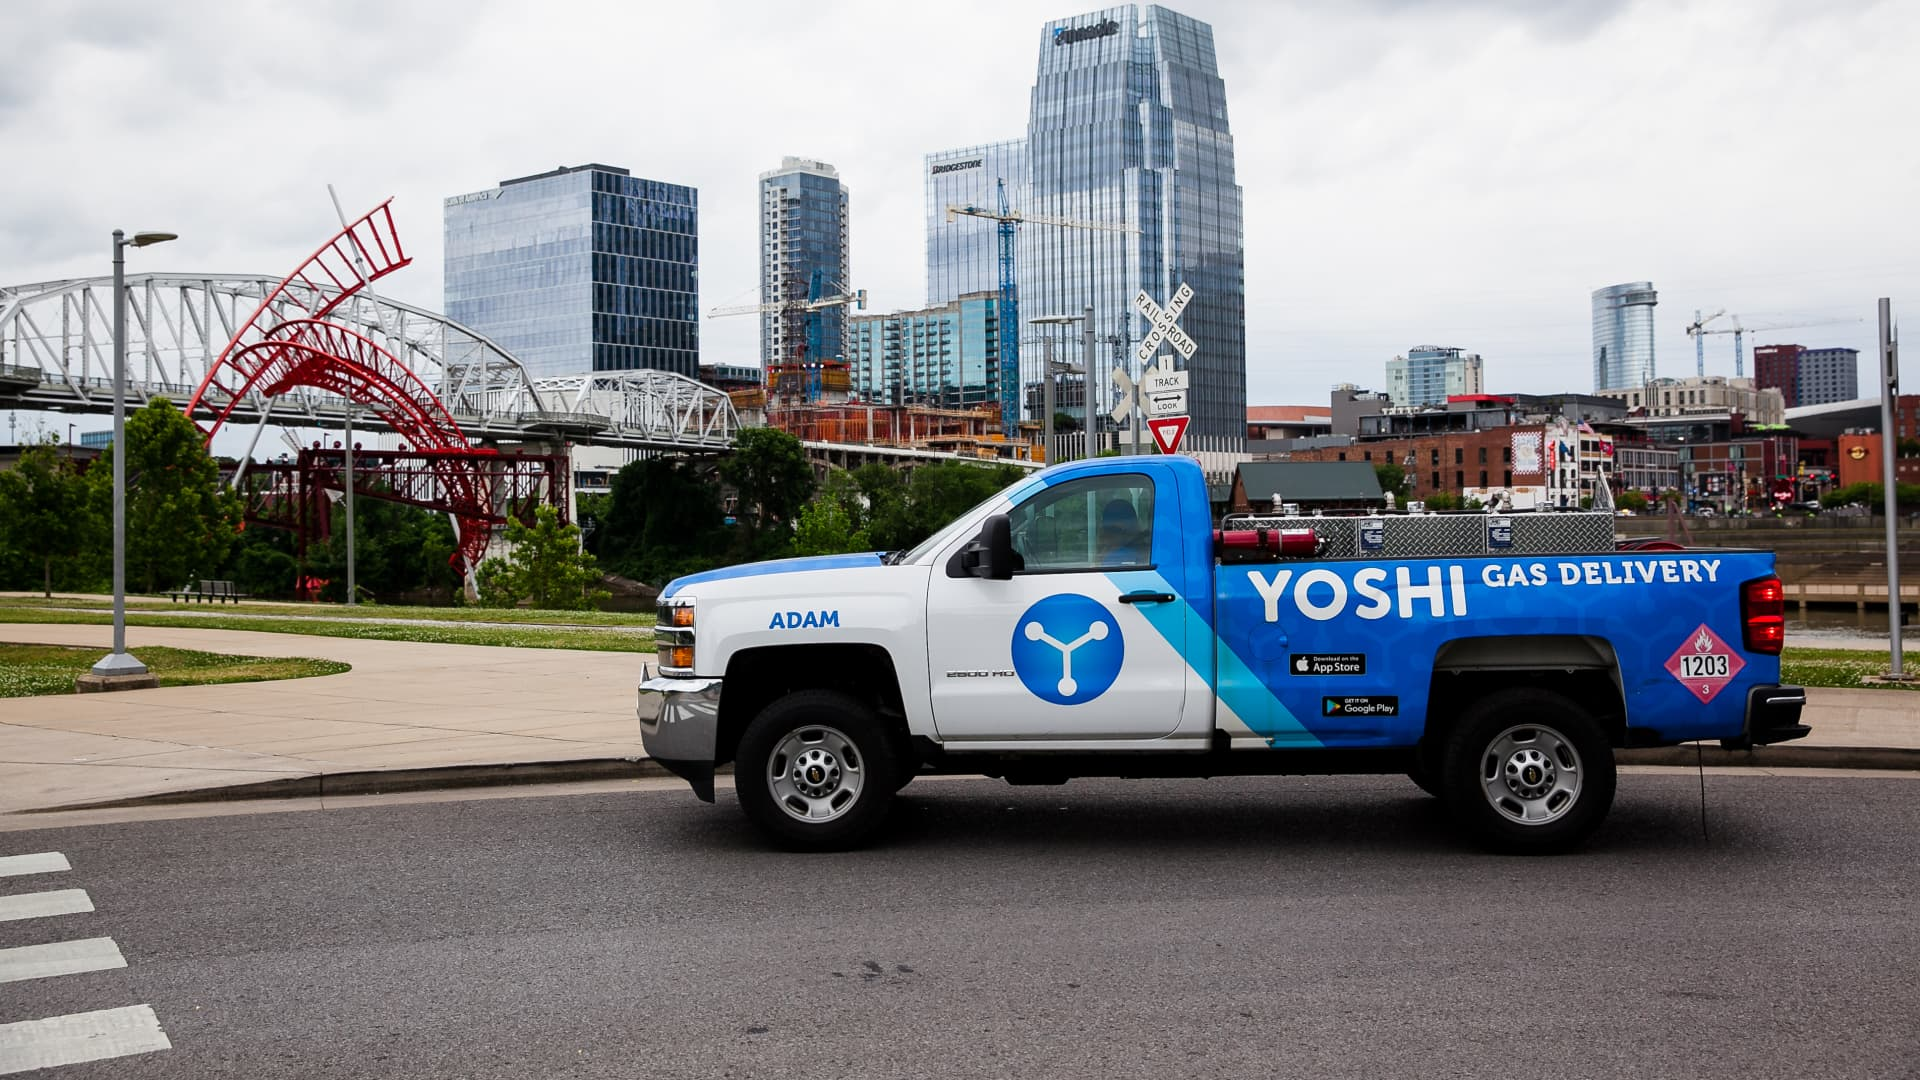 GM Ventures is leading a $23 million investment round into on-demand car maintenance service Yoshi.